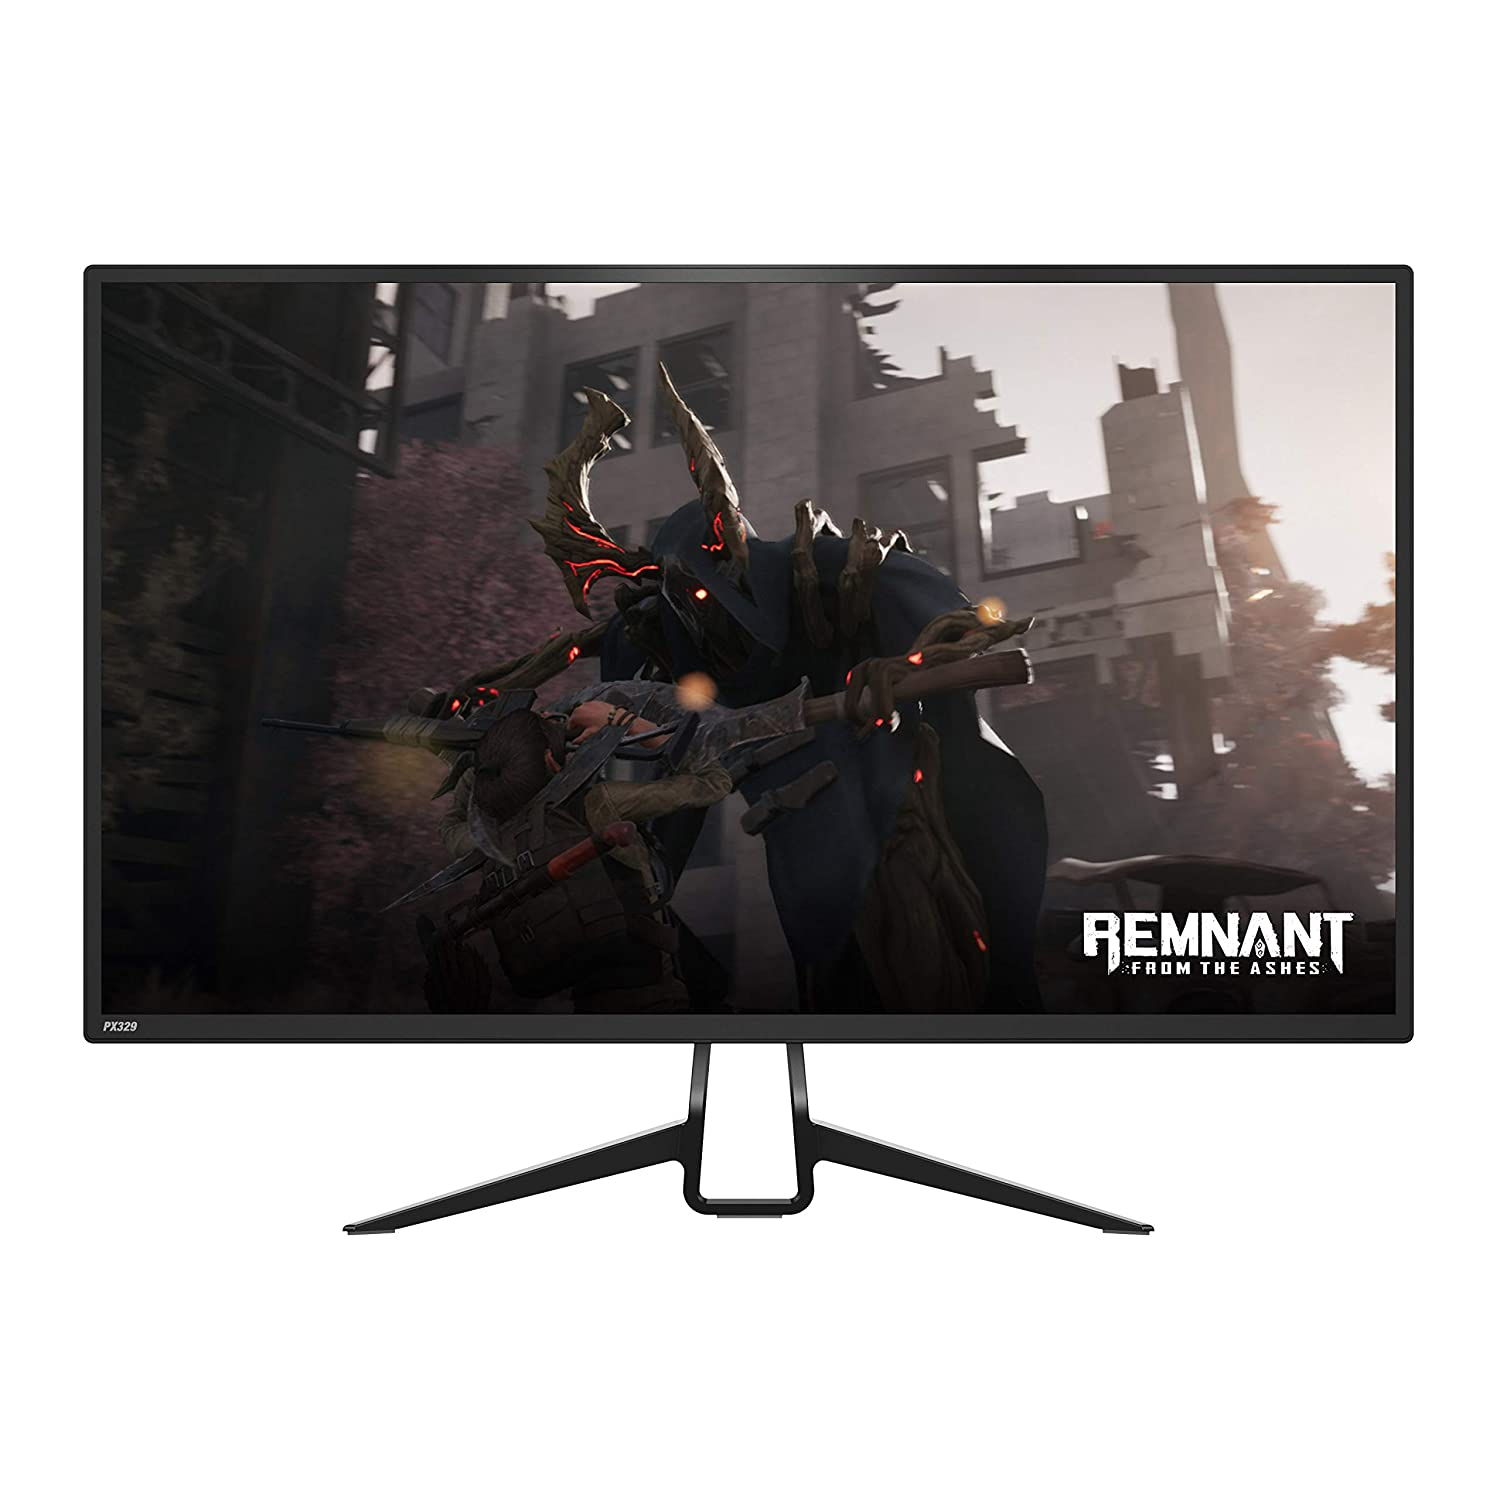 Best Monitor for Xbox One X and PS4